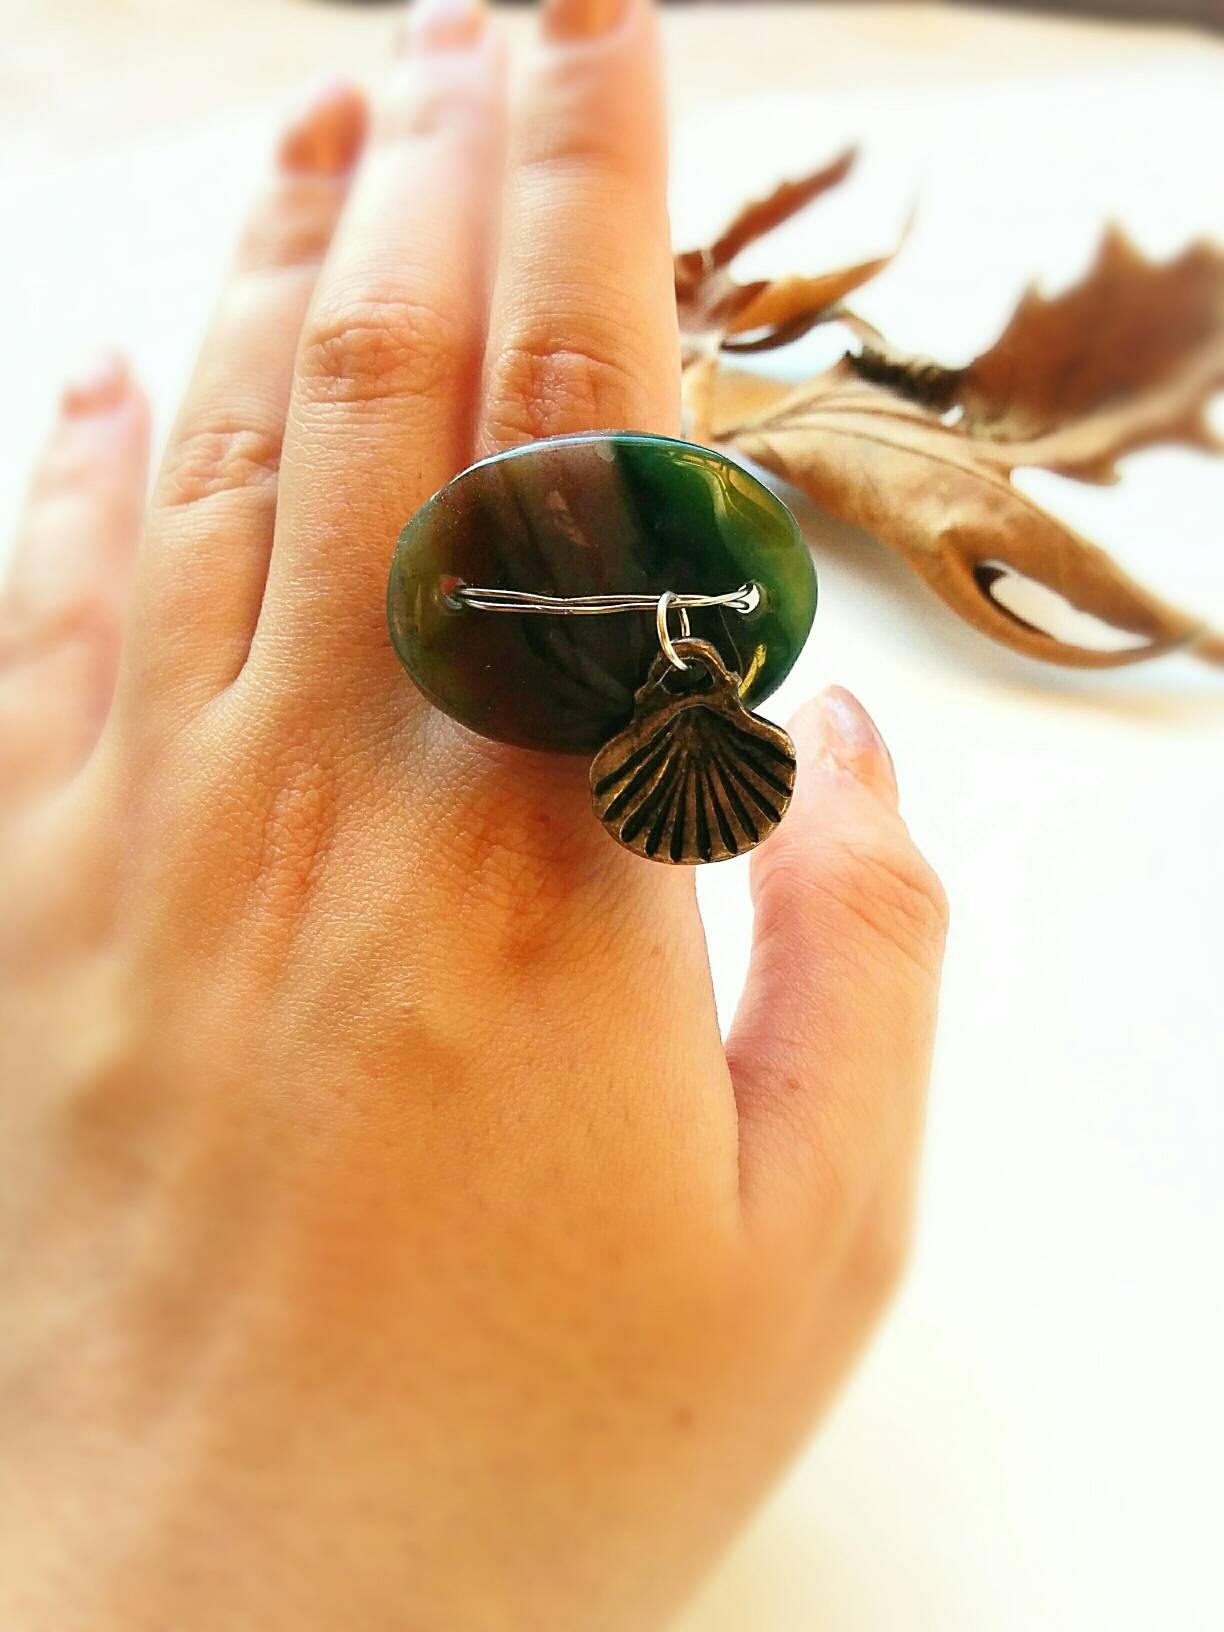 Green Jade stone statement ring, Boho Jade green stone ring, wire ring, large green stone ring, boho wire ring, hippie wire ring,bohemian